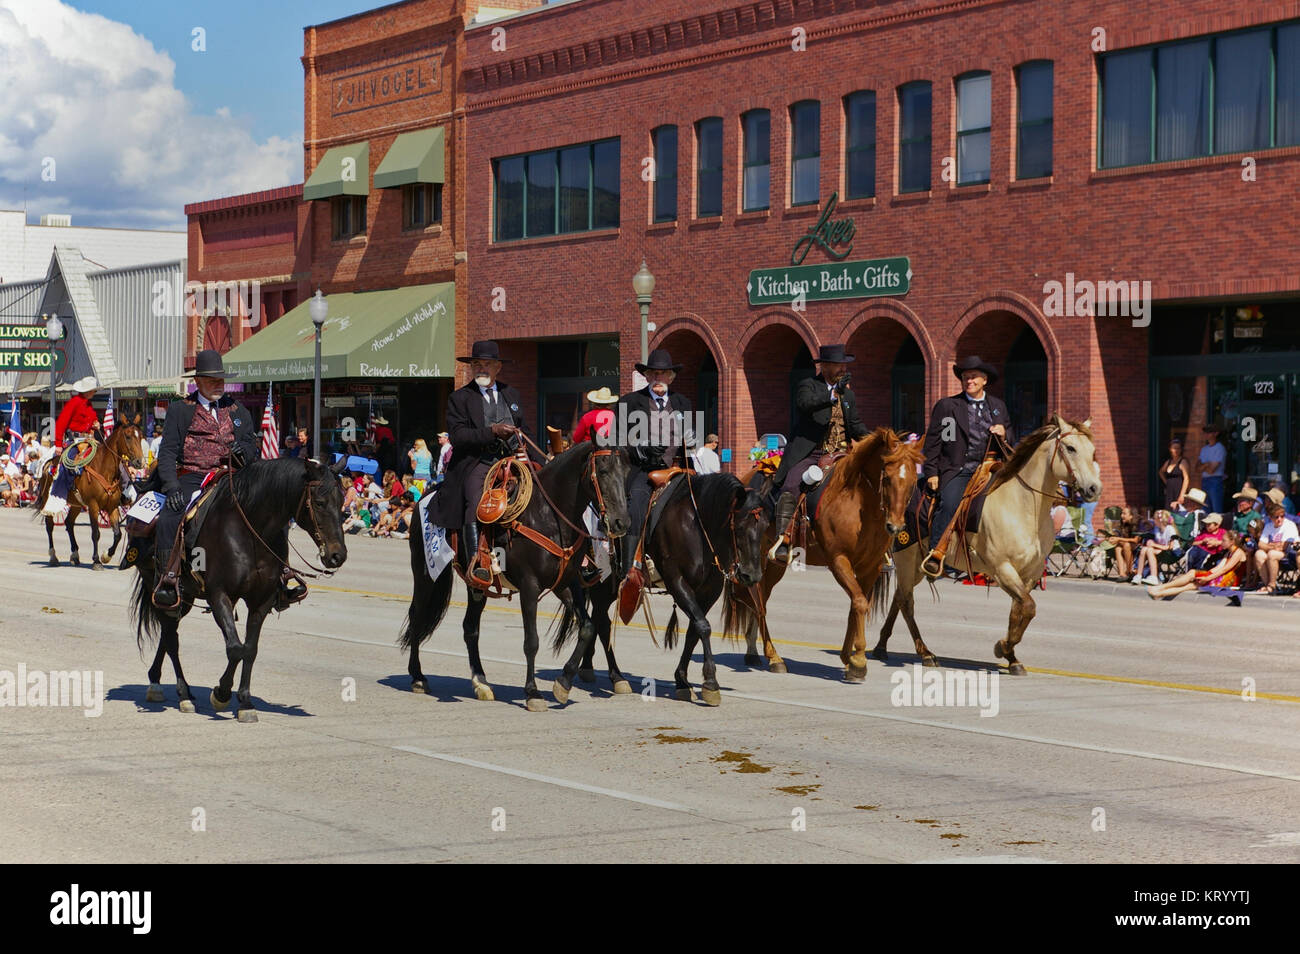 Cody, Wyoming, USA - July 4th, 2009 - Four riders dressed in black depicting Wyatt Earp, Virgil Earp, Morgan Earp - Stock Image